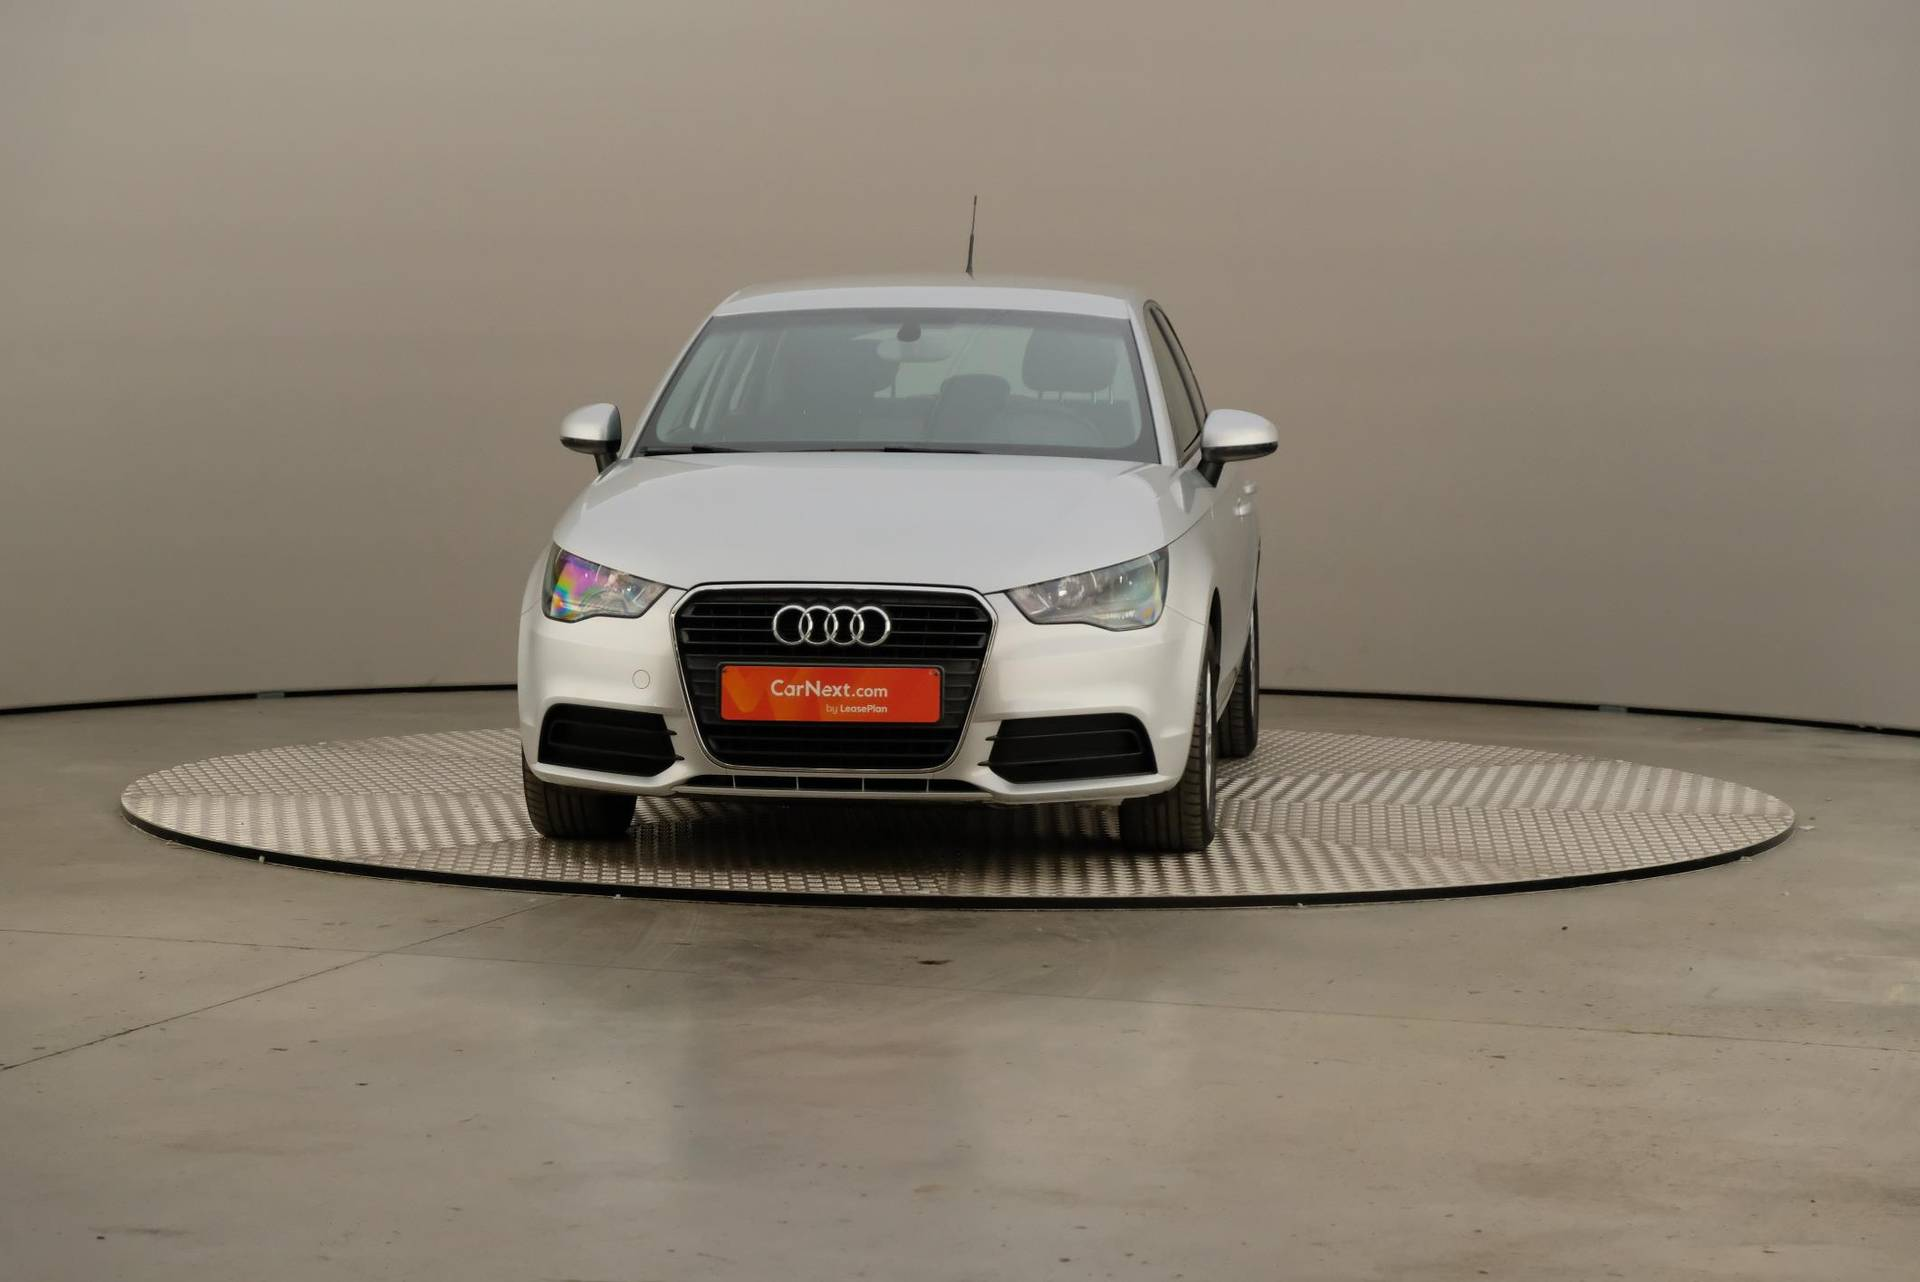 Audi A1 1.6 TDI Sportback, Attraction S&S PDC BT, 360-image32